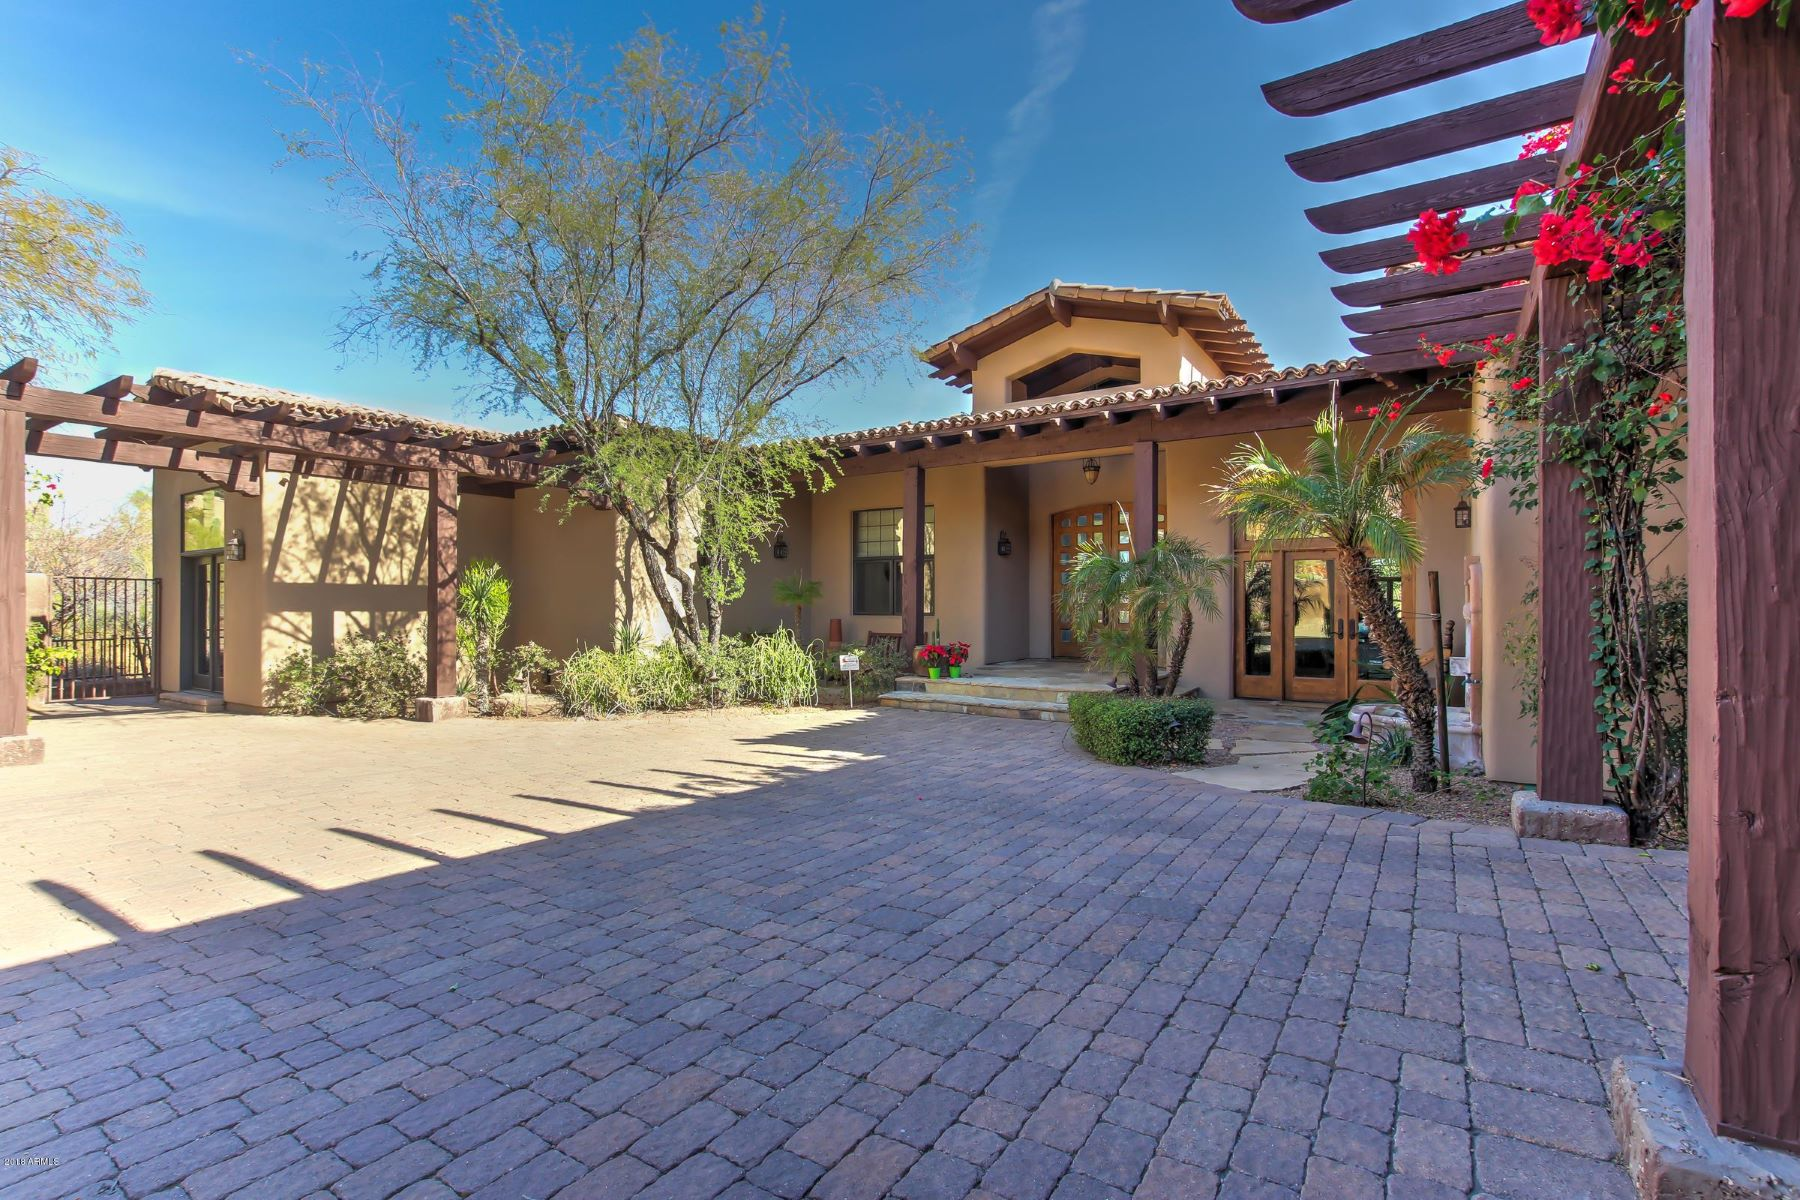 Single Family Home for Sale at Stunning Single Level Estate 9755 N Red Bluff Dr Fountain Hills, Arizona 85268 United States